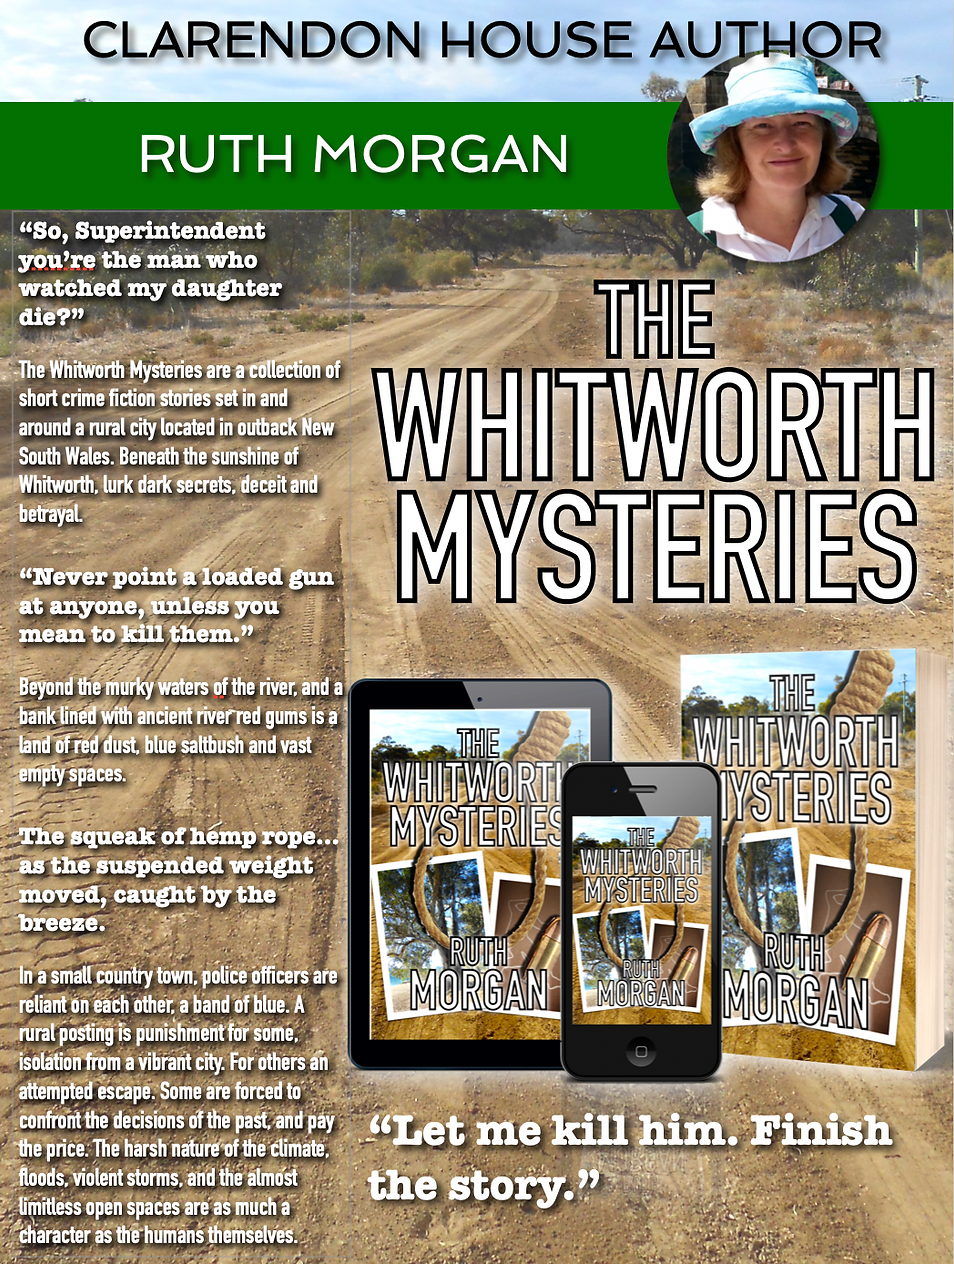 Whitworth Mysteries ad image 1.png